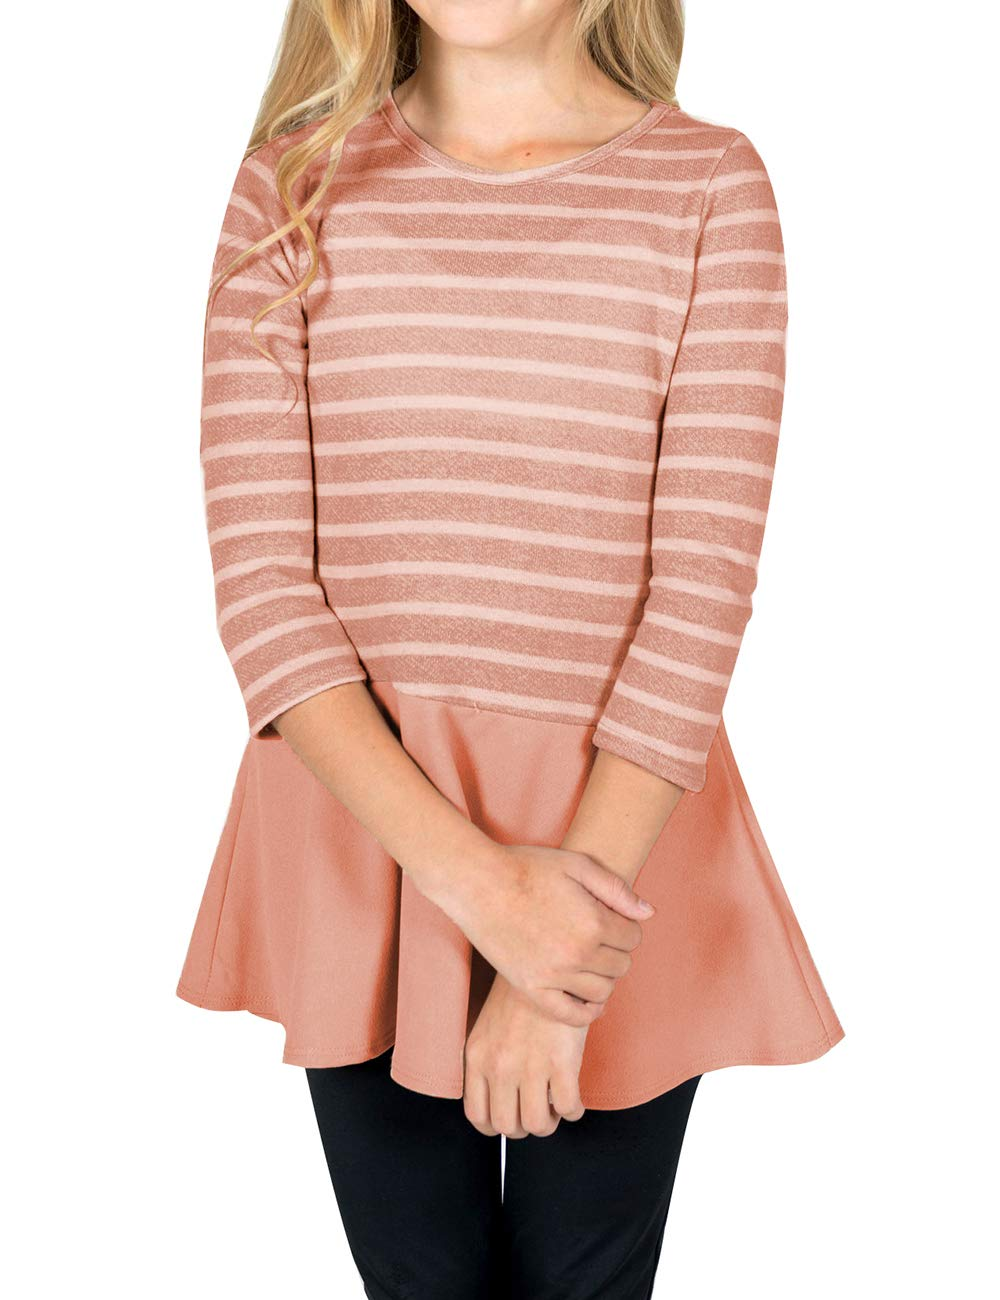 GRAPENT Girls Casual Stripe Knit Top 3/4 Sleeve Ruffle Hem Tunic Blouse 4-13 Years GP-GBLBEOED